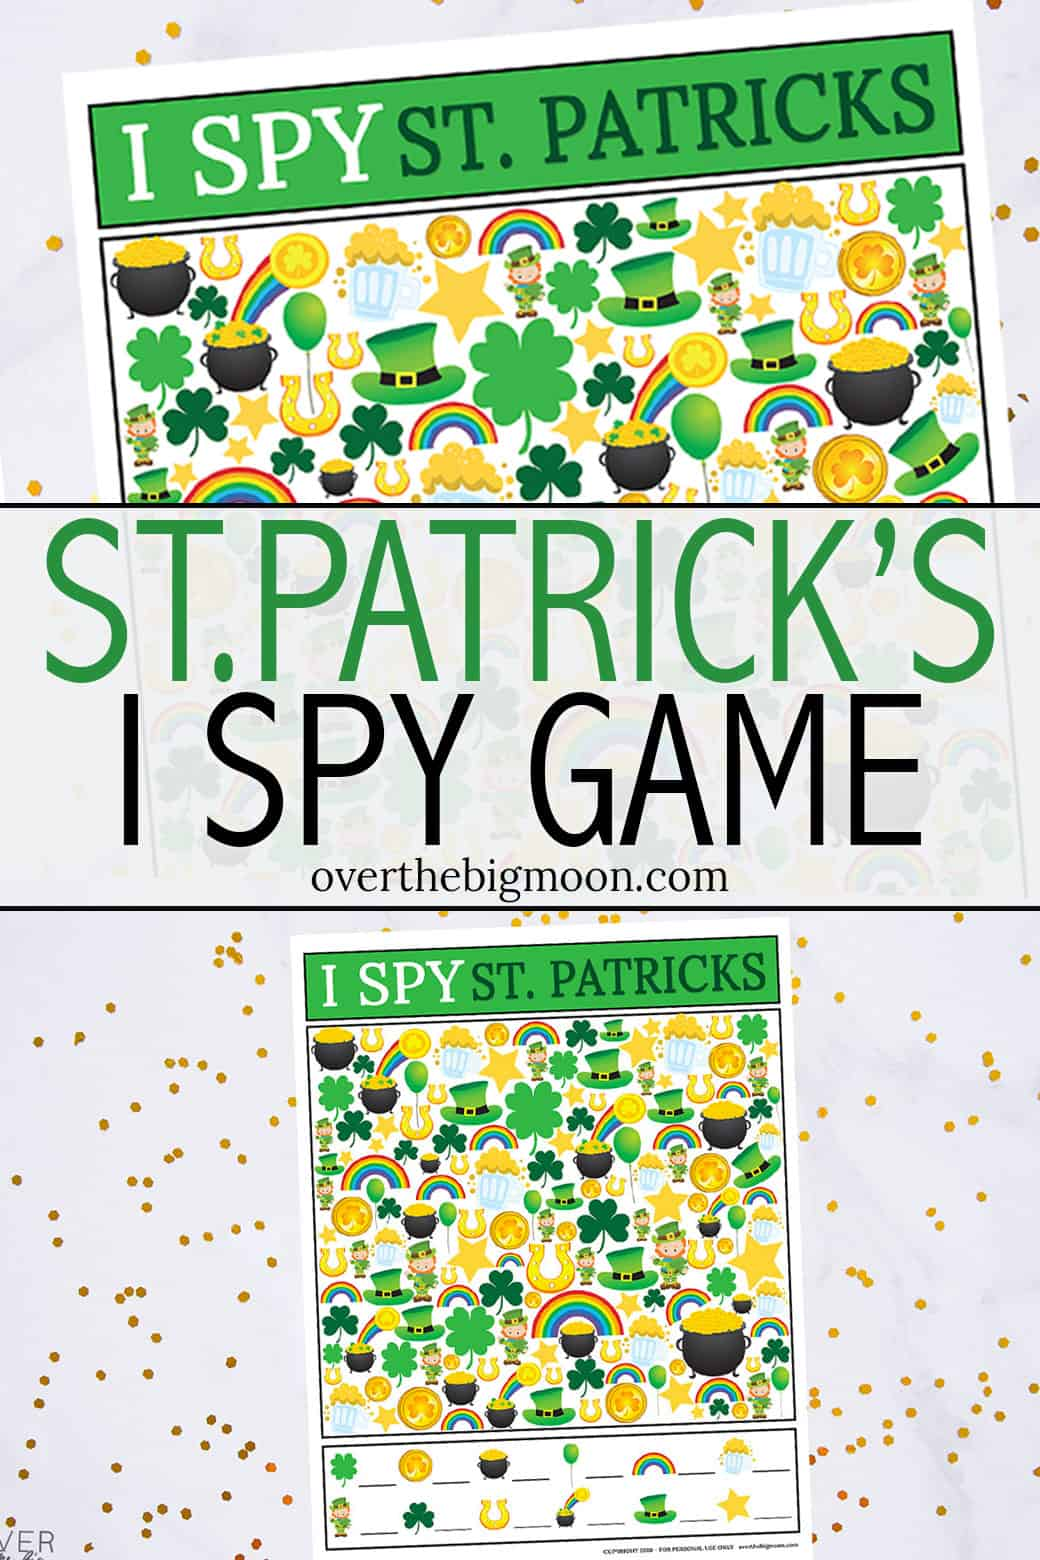 This kidsSt.Patrick's Day I Spy Printable Gameis such a fun activity for kids to play on St. Patrick's Day! Just print and play! So simple! From overthebigmoon.com!